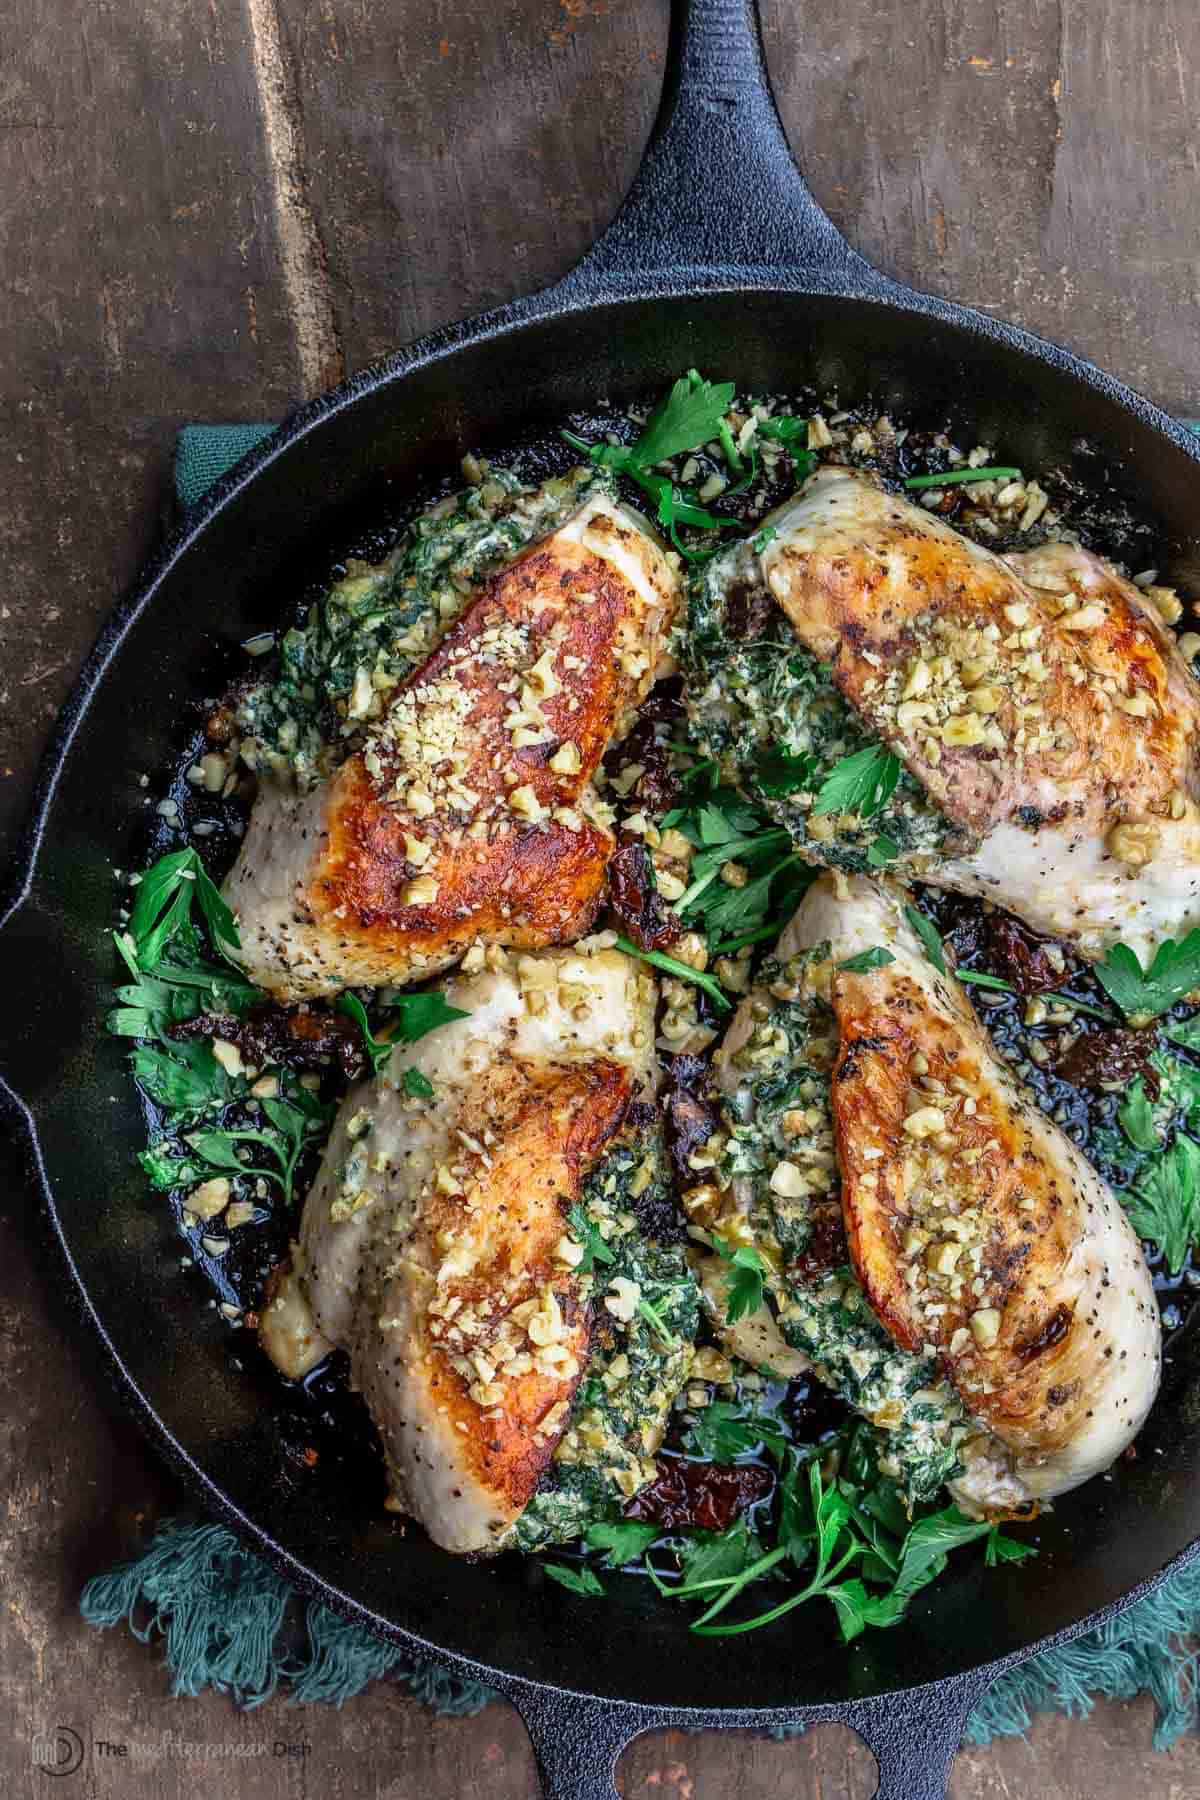 stuffed chicken breasts with spinach in a cast iron skillet